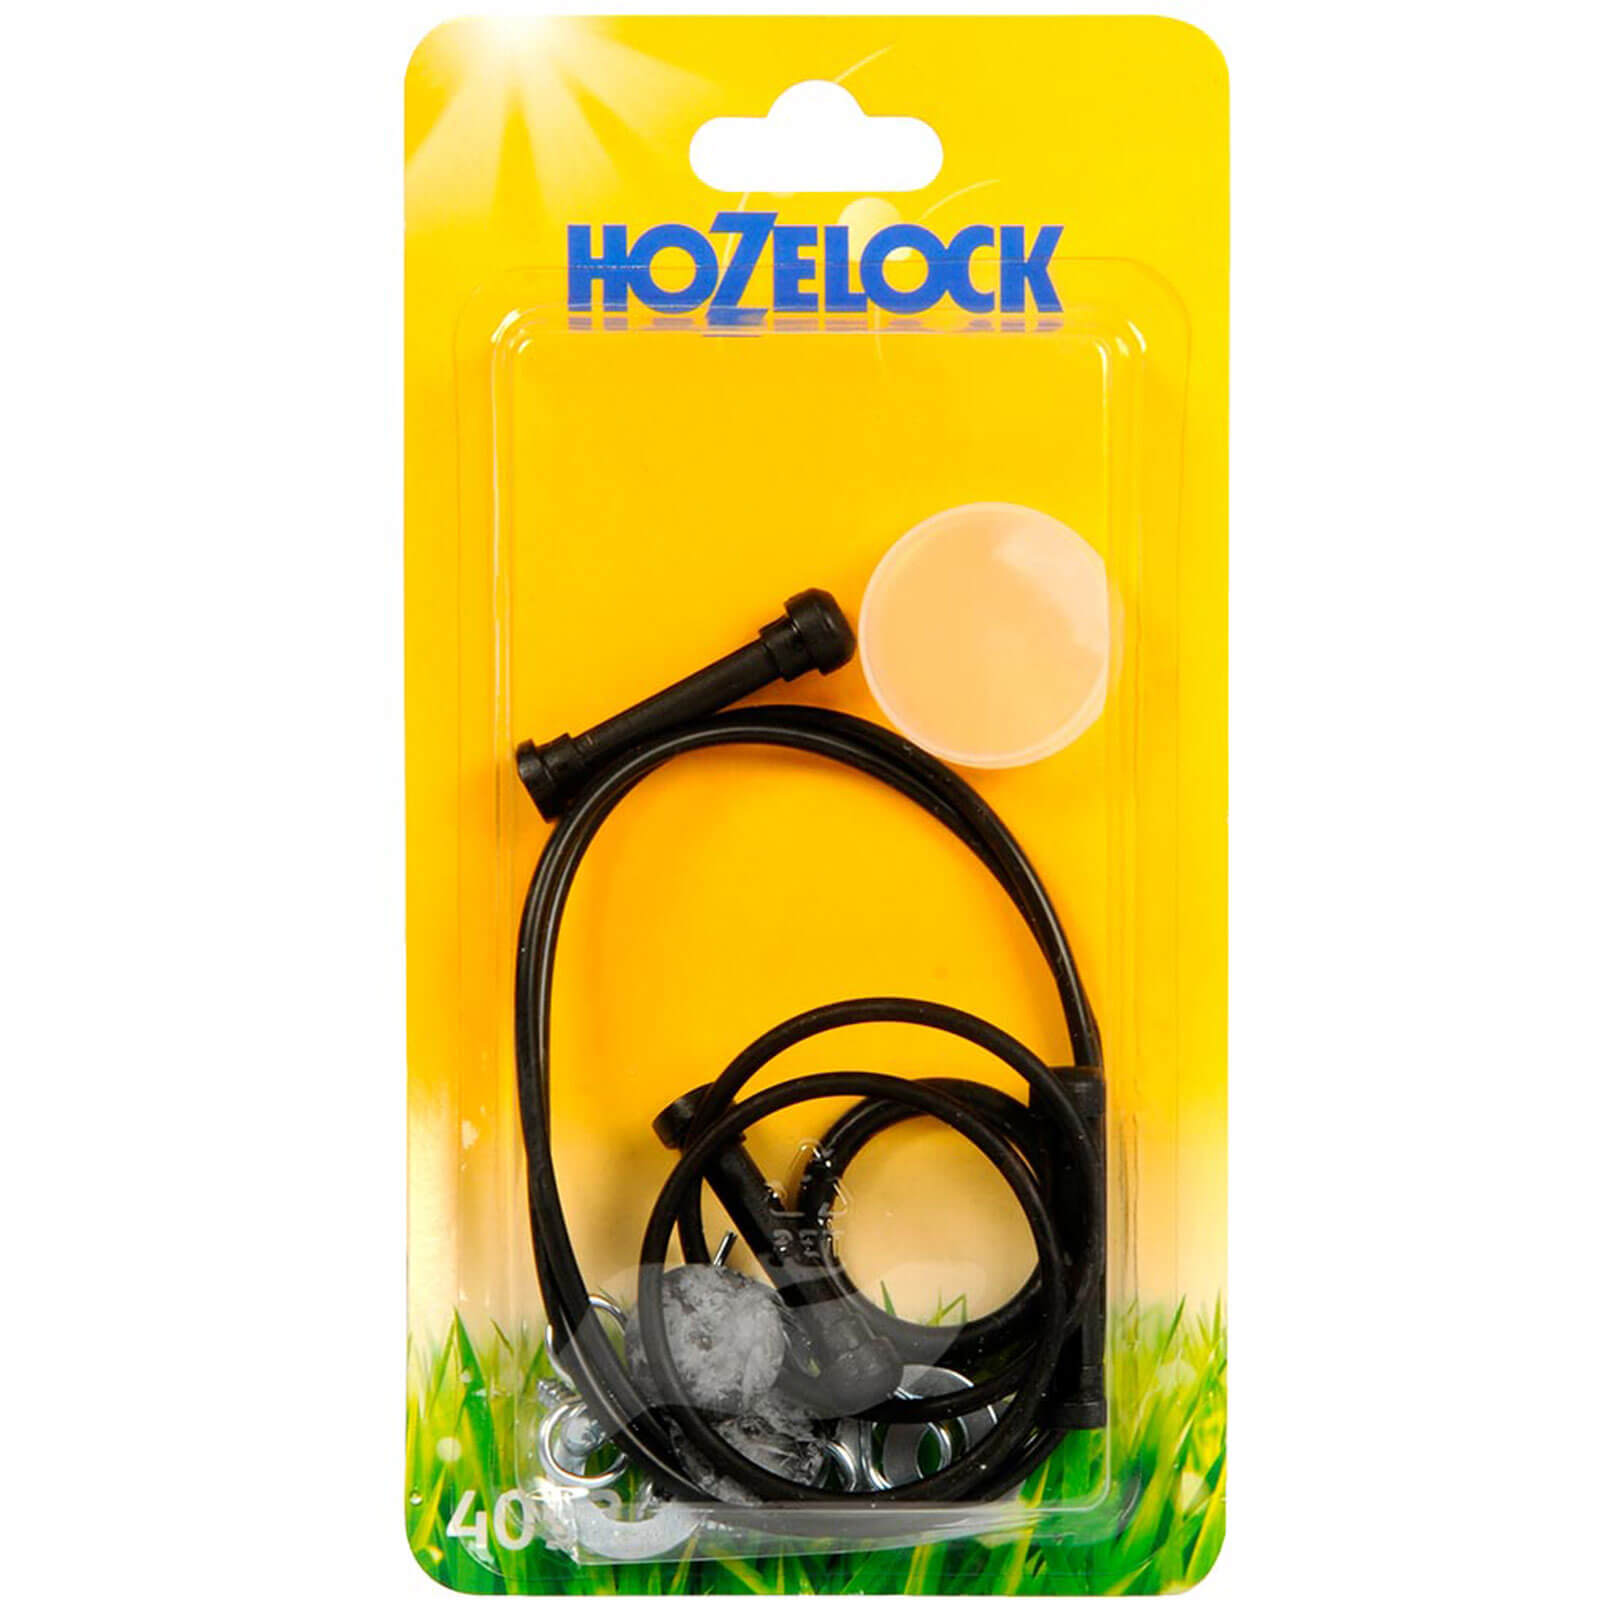 Image of Hozelock Annual Service Kit 12 - 16l Water Sprayers